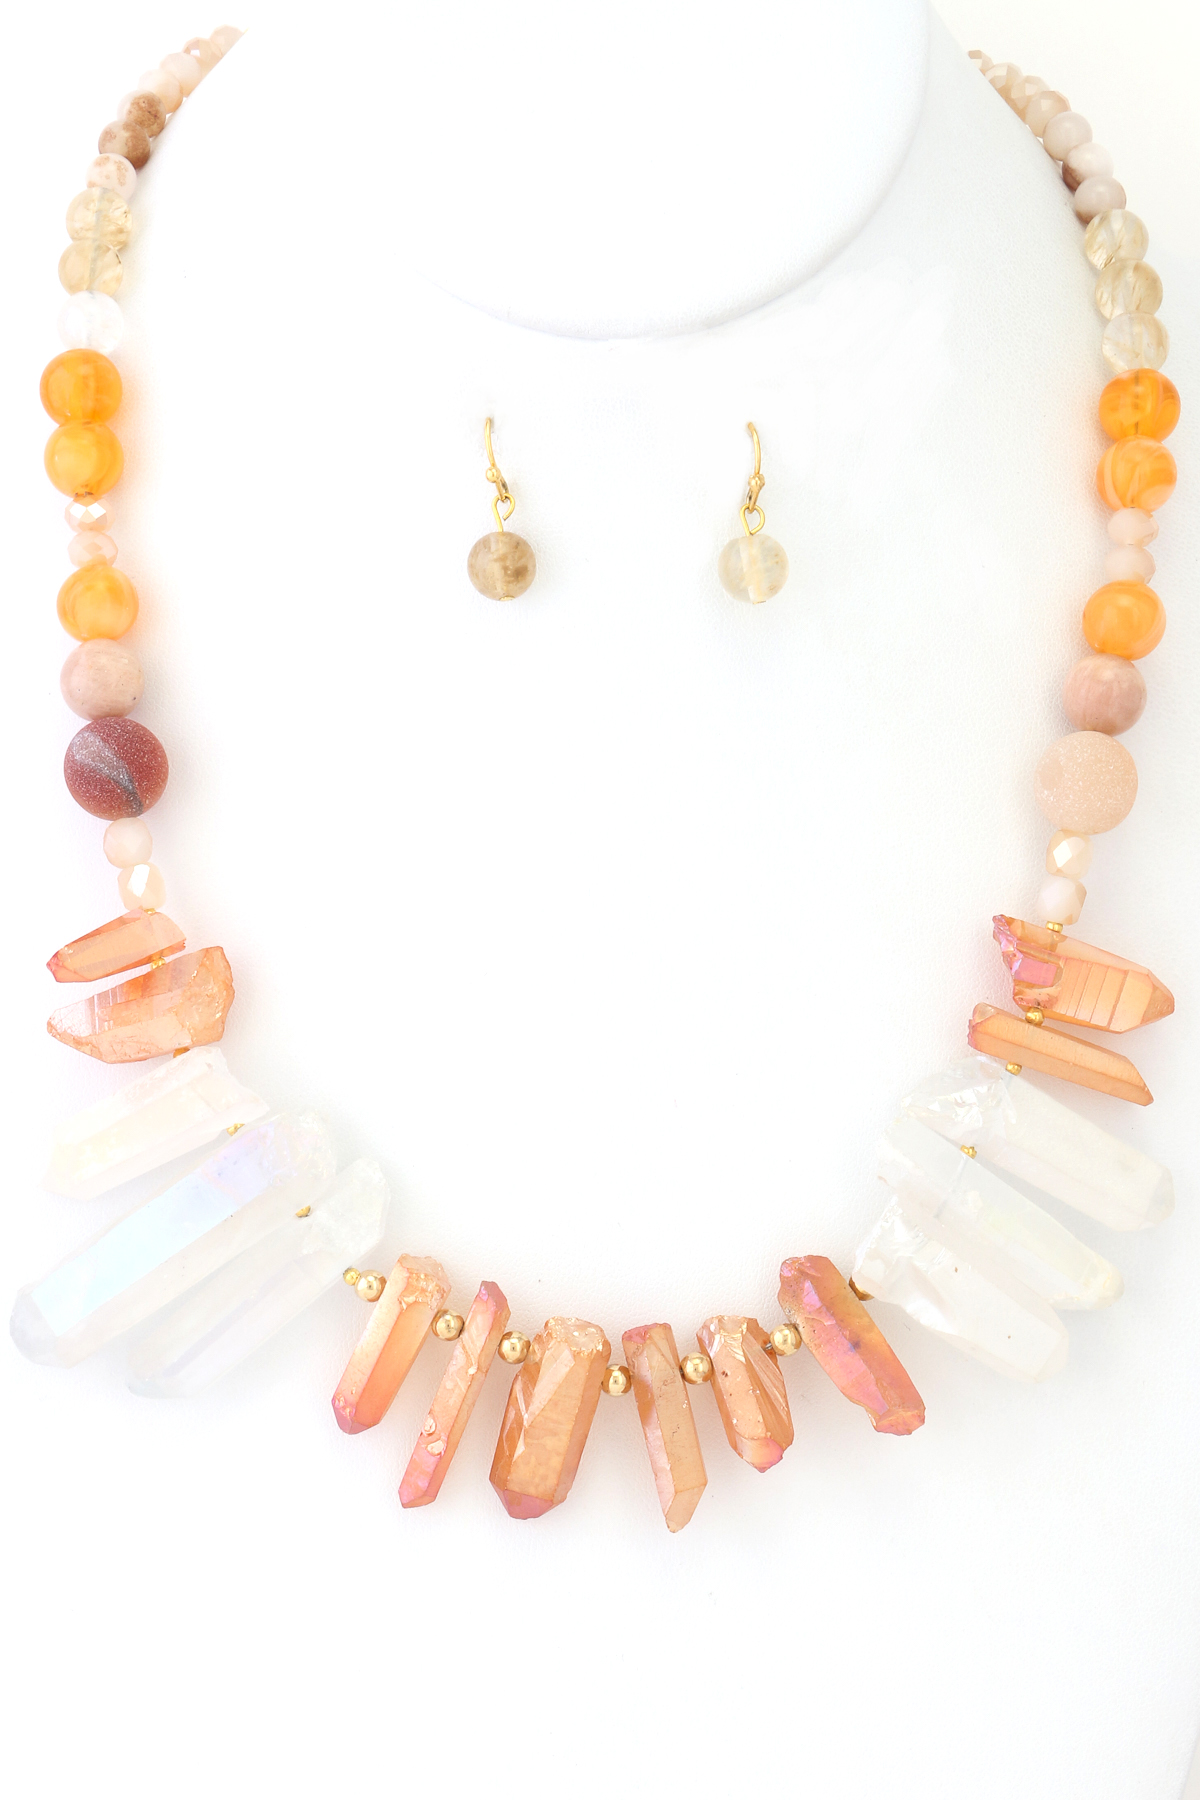 Marble Stone Jewelry : Natural stone necklace set necklaces